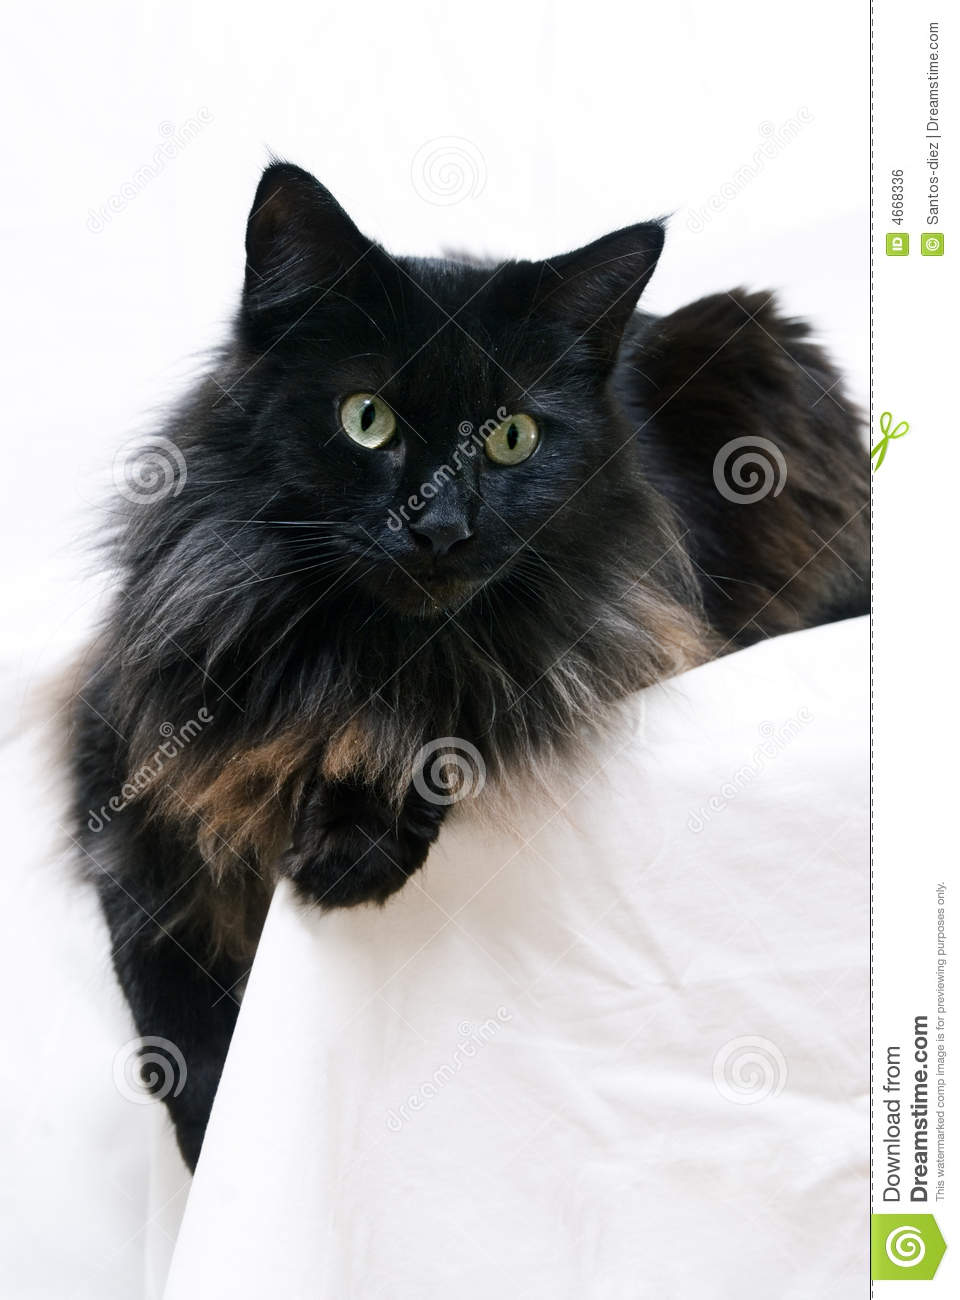 Black Maine Coon Royalty Free Stock Image - Image: 4668336 Tabby Maine Coon Kitten